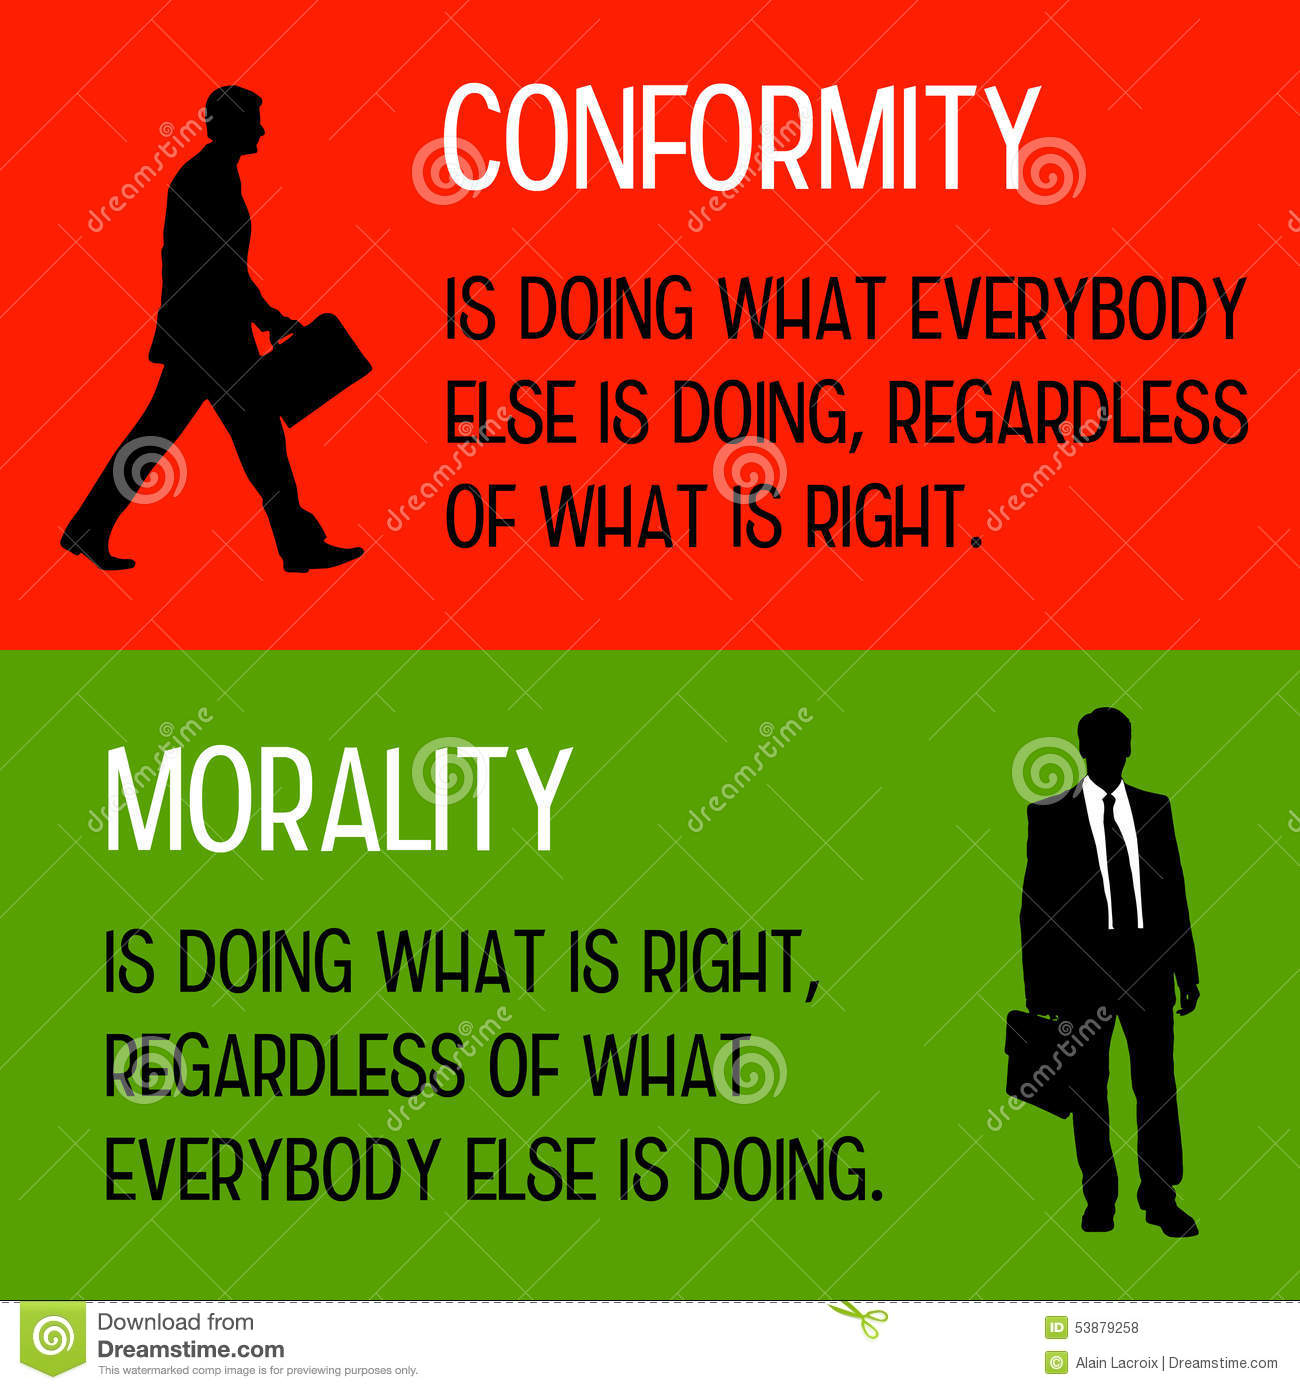 What is conformity in psychology